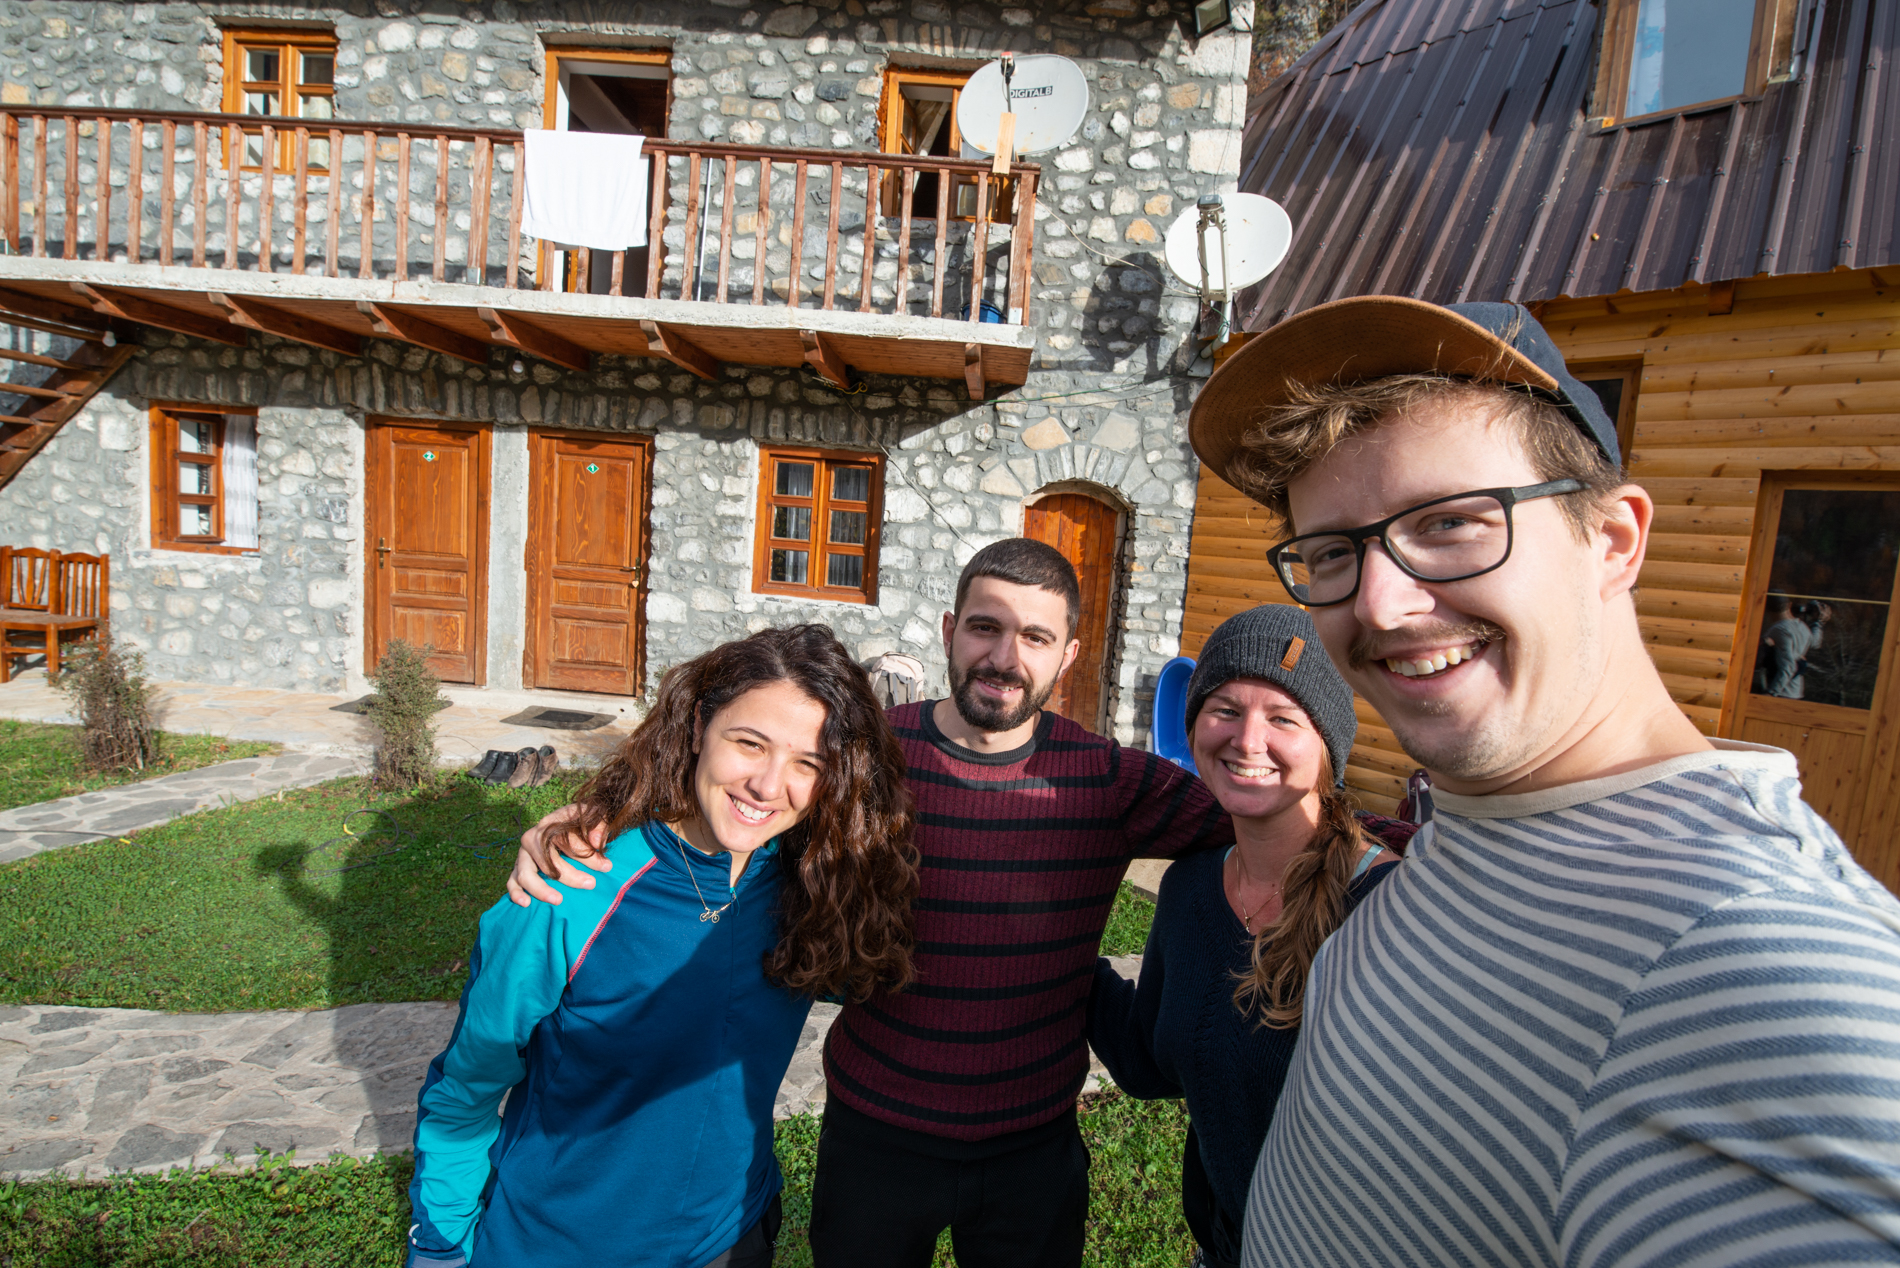 Ellis and me with Albanian tourguides in front of their guesthouse in Theth, ALbania.